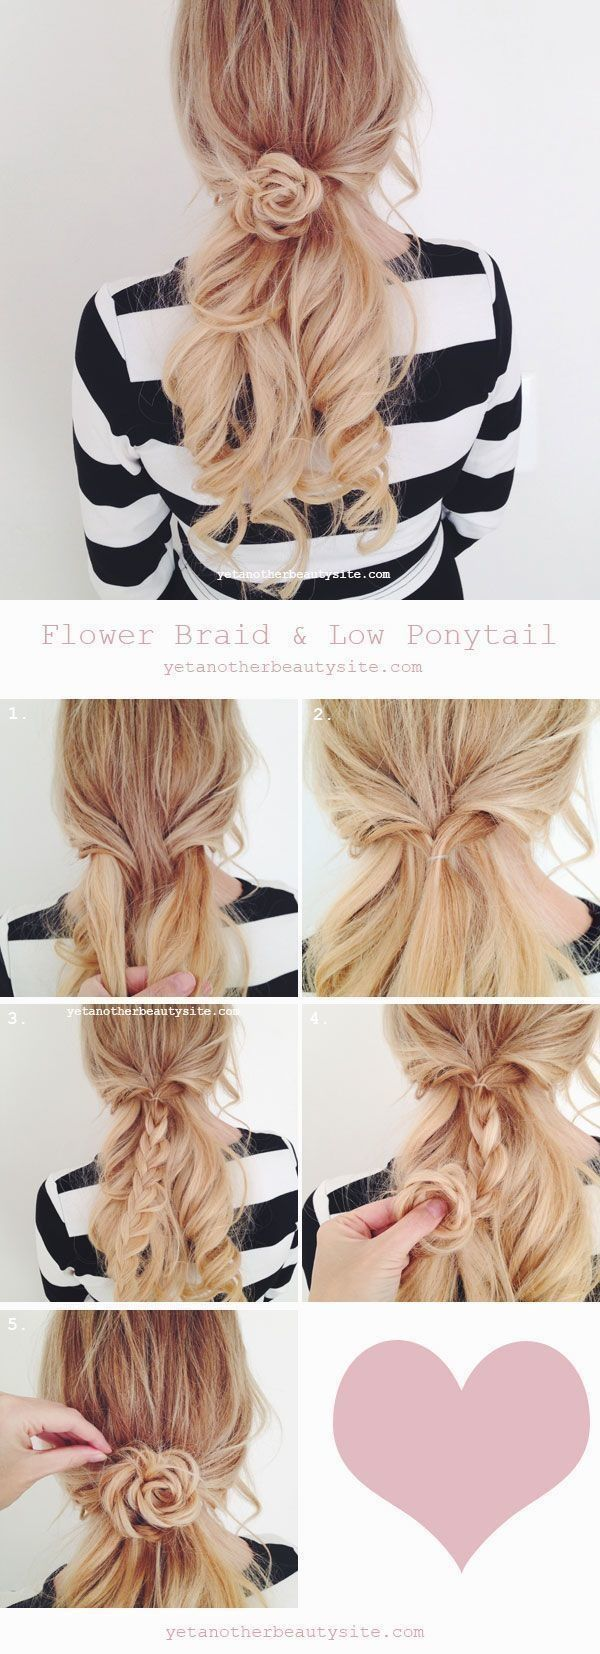 A flower made with your own hair.